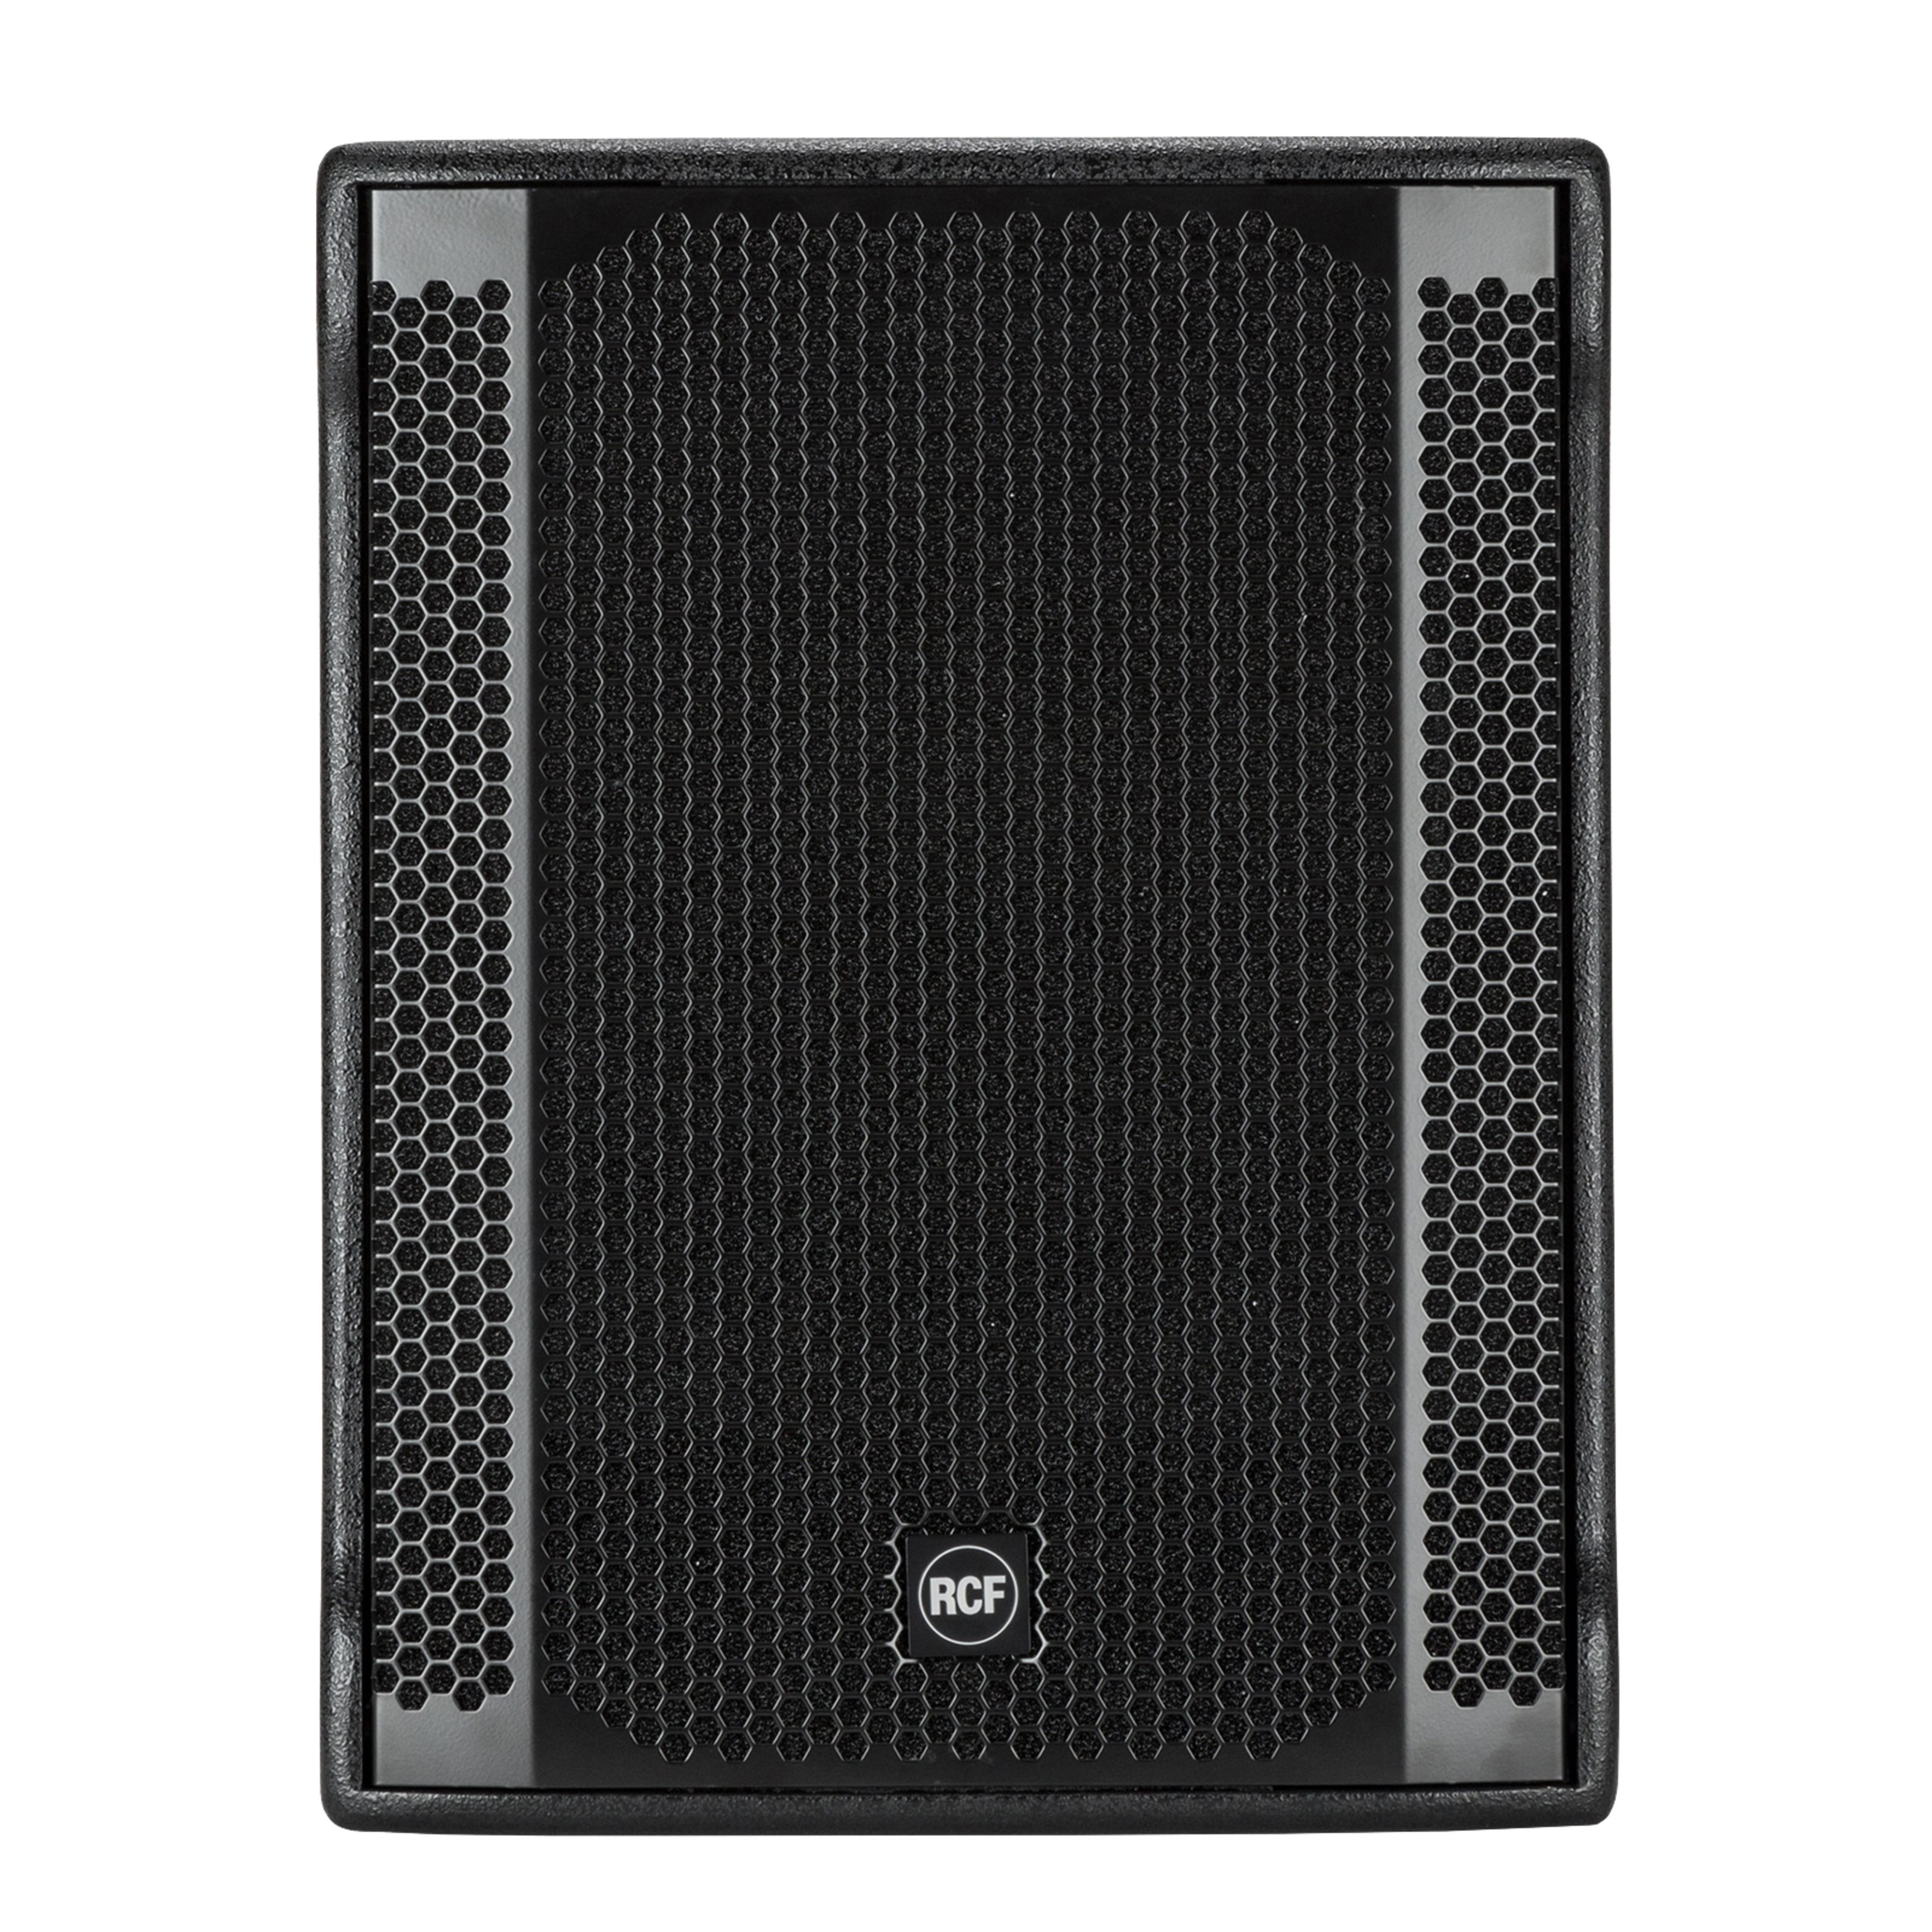 RCF - SUB 705-AS II 15 Active-Subwoofer, 700 W 13000455